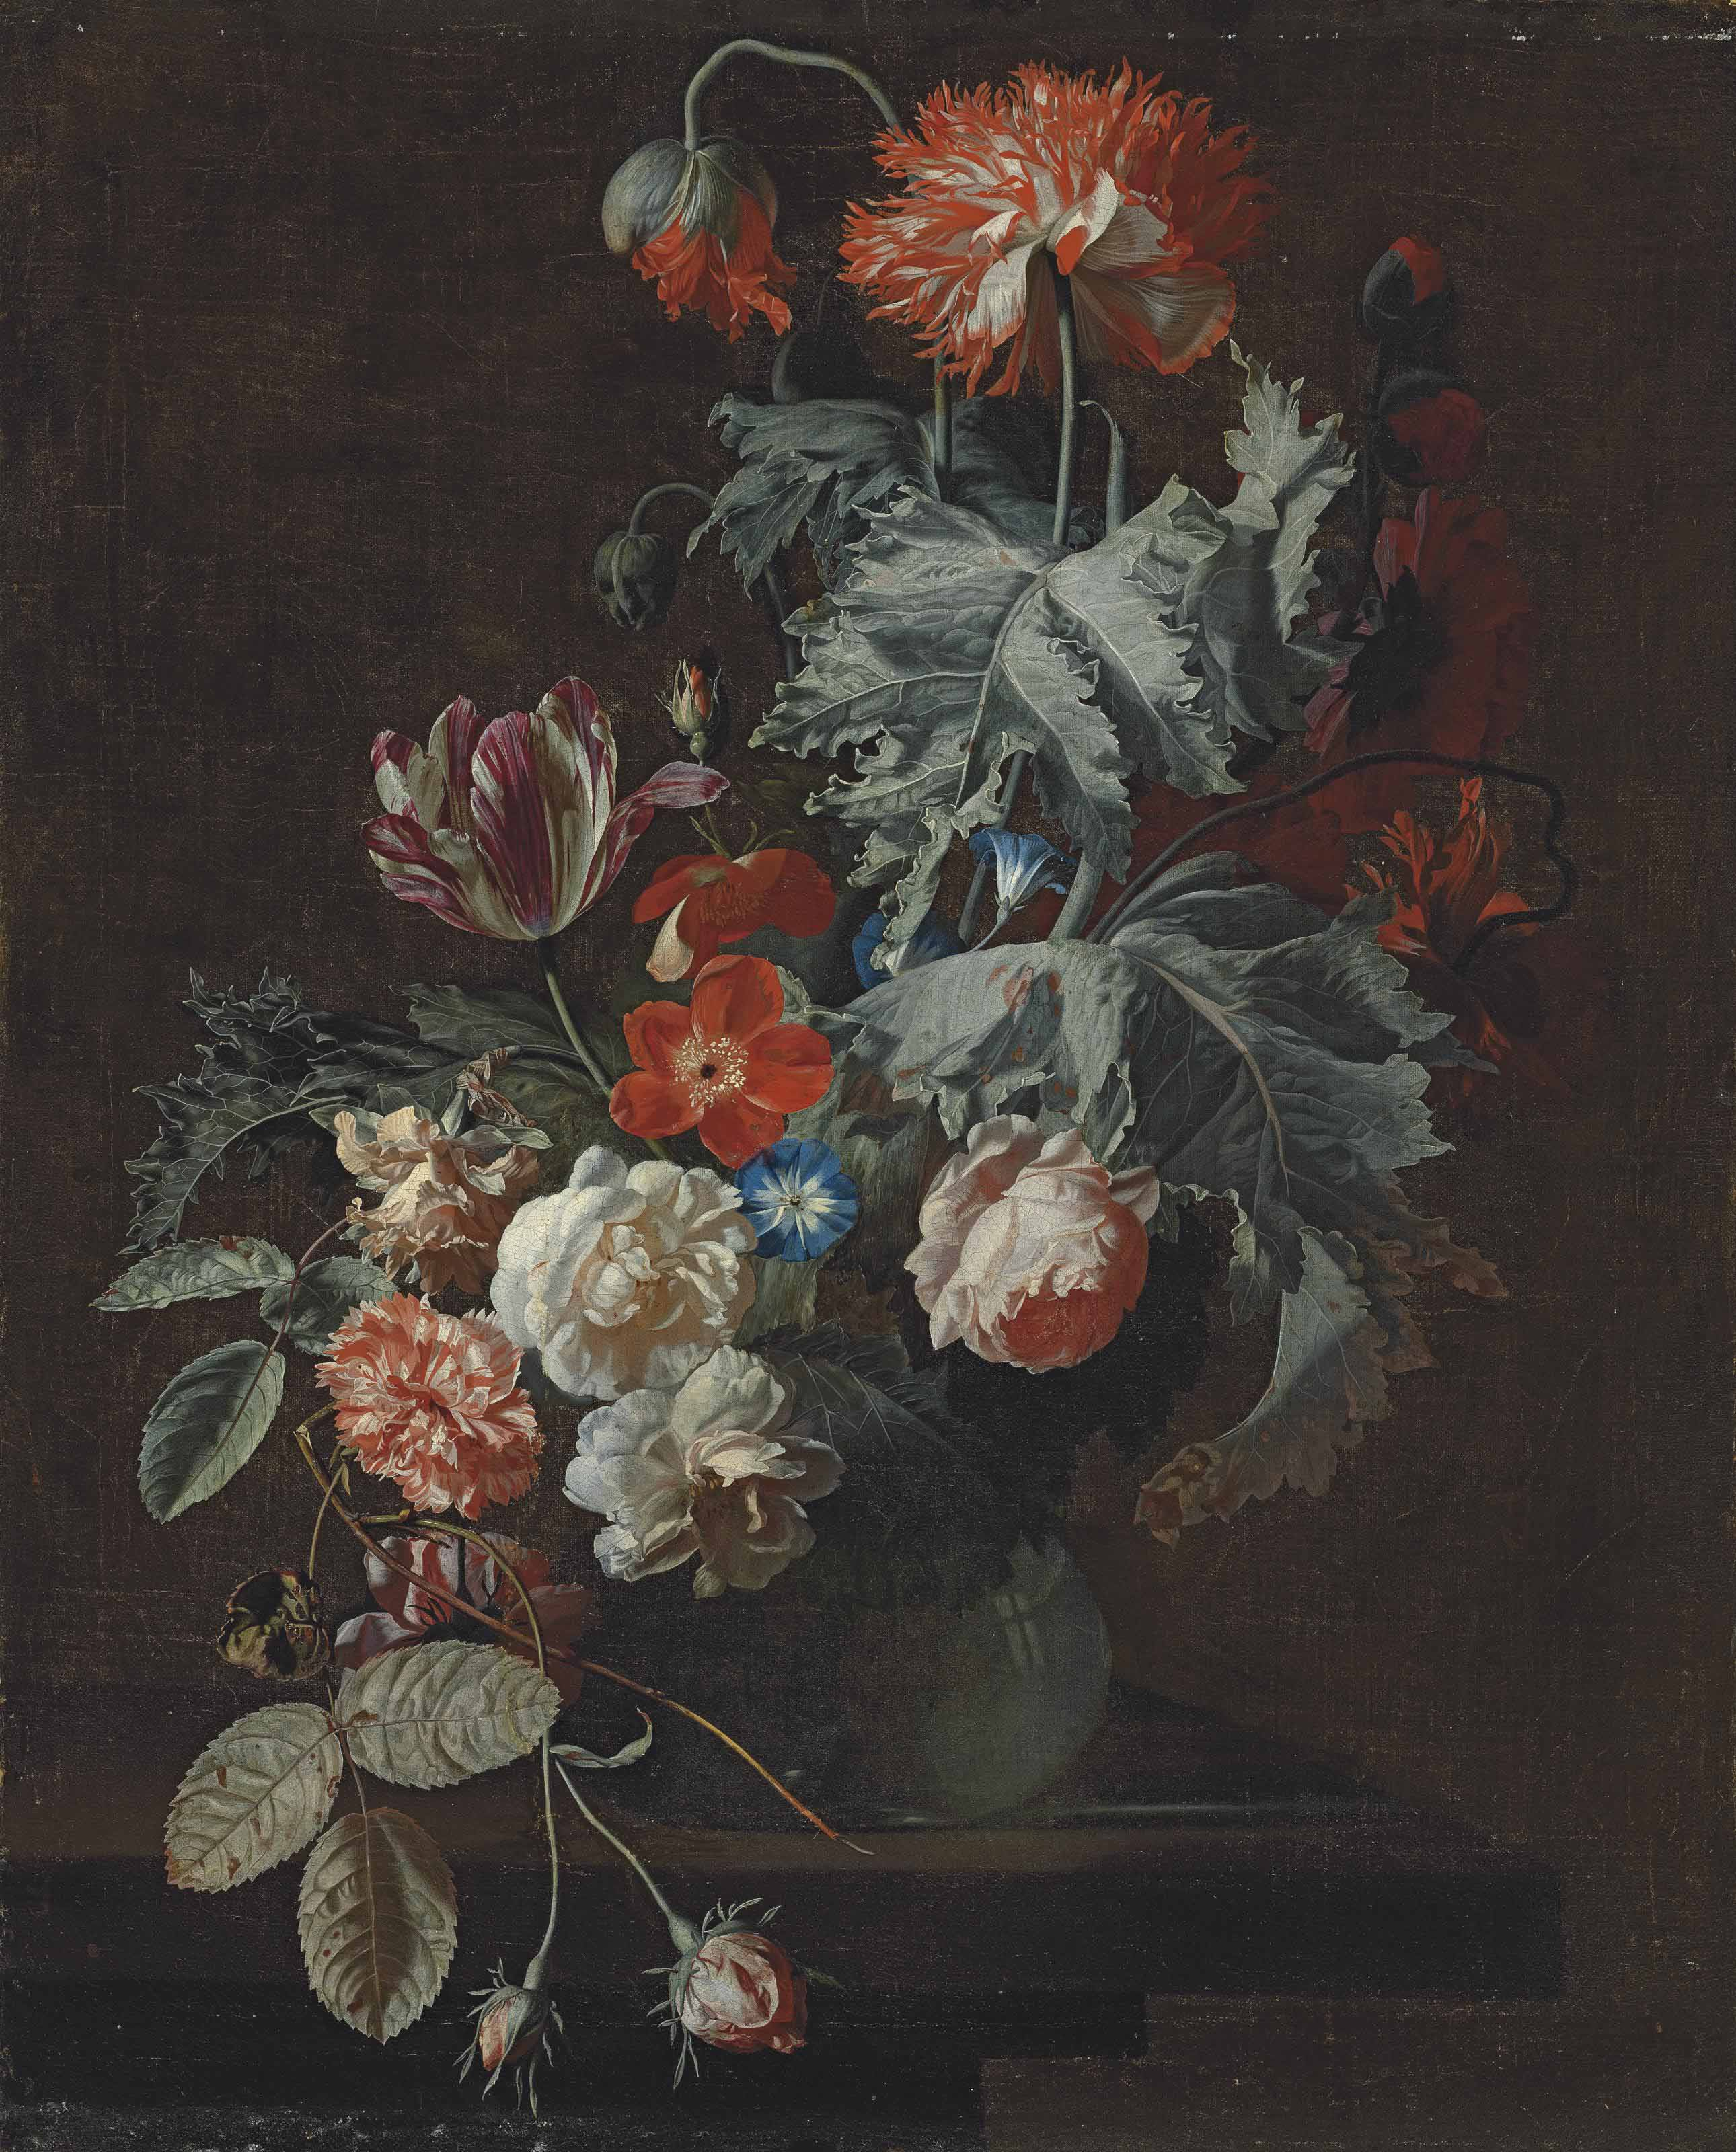 Carnations, tulips, roses, Morning Glory and other flowers in a glass vase, on a stone ledge